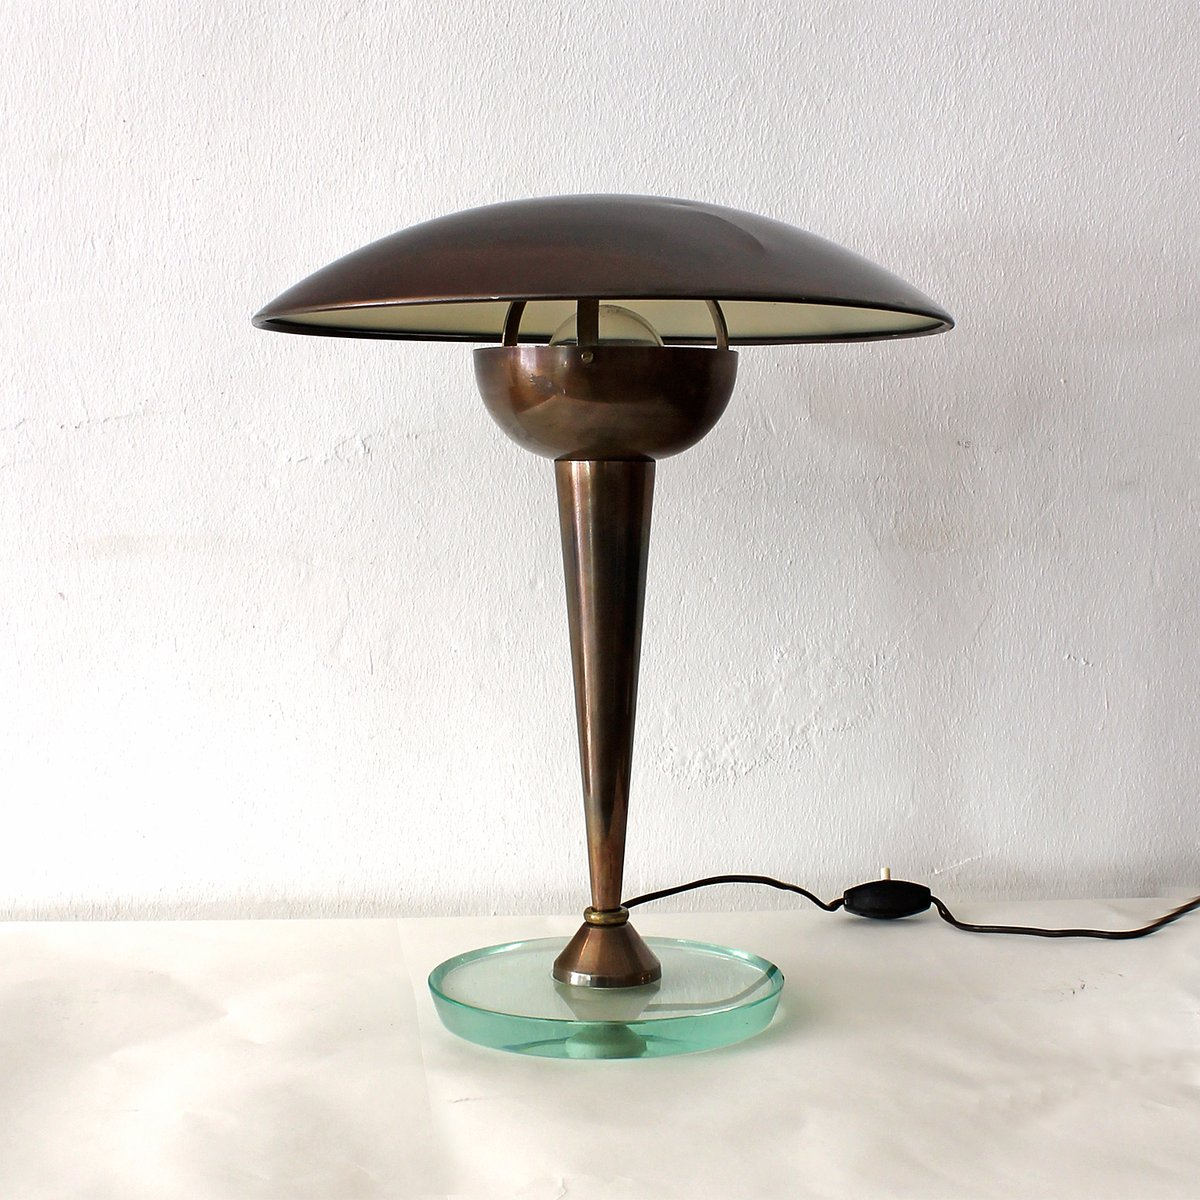 Art Deco Italian Desk Lamp, 1930s - Art Deco Italian Desk Lamp, 1930s For Sale At Pamono